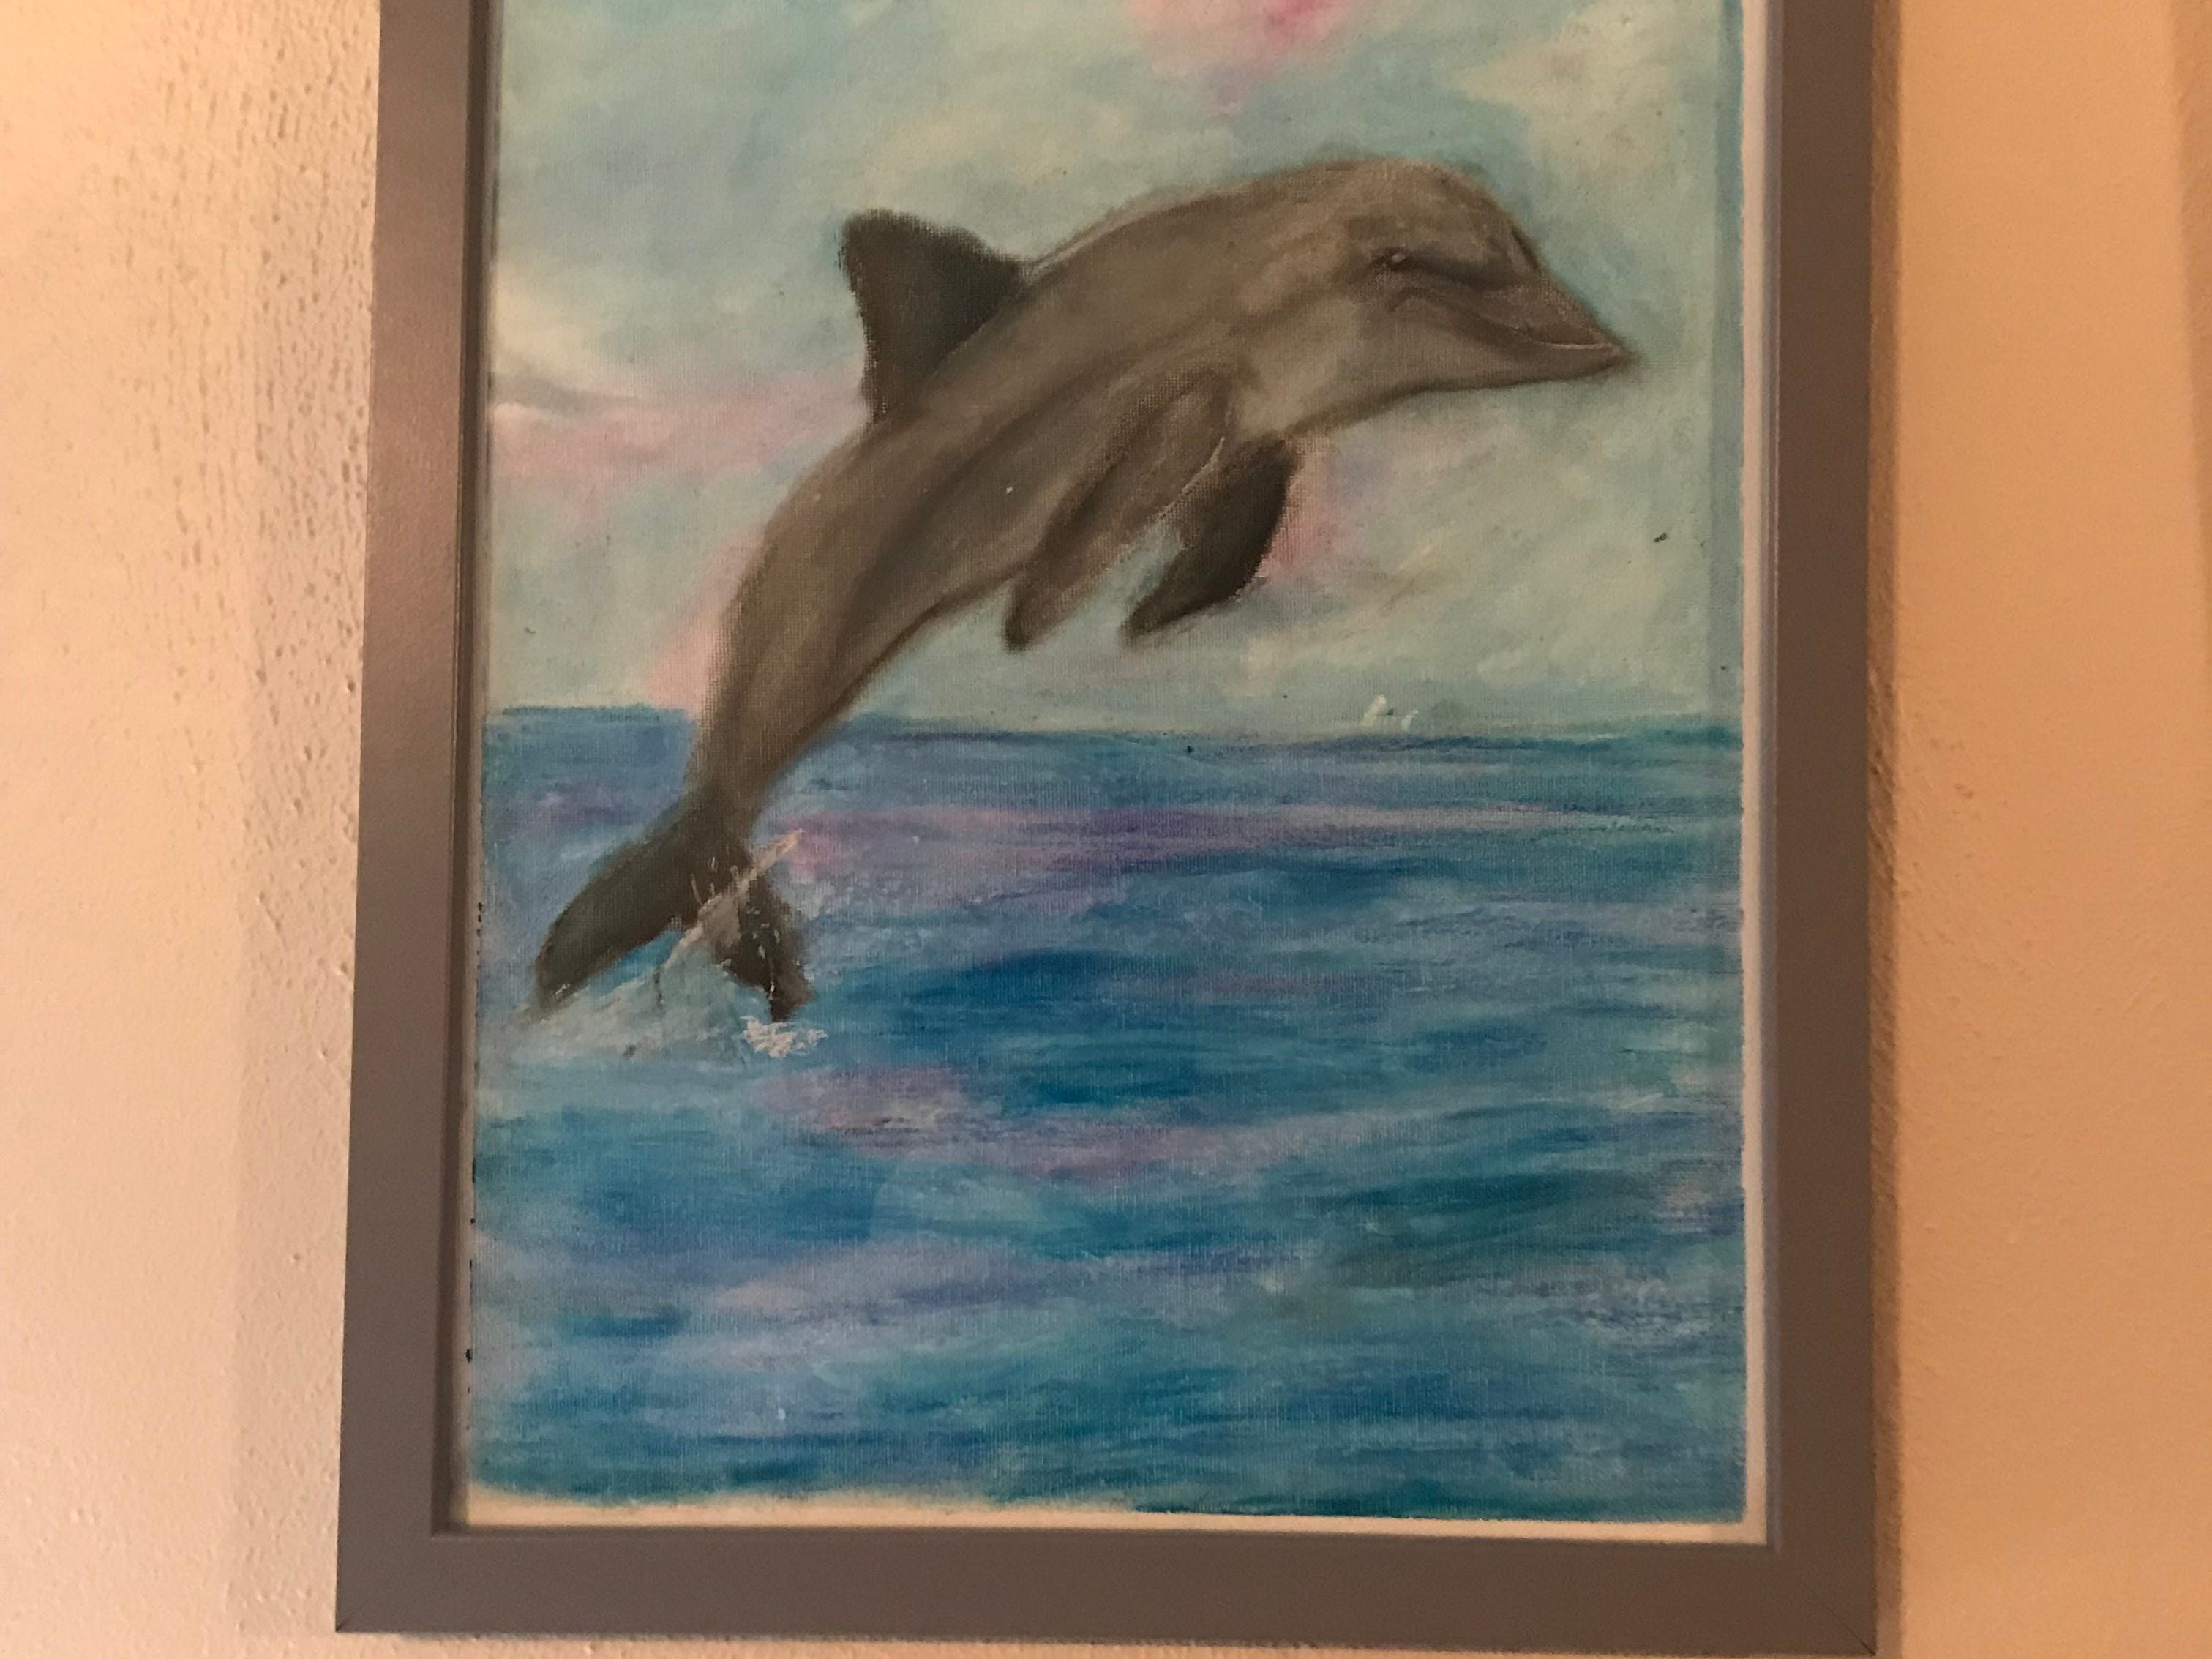 Johnson City Central School District seventh grader Molly Jablonowski, 12, has been creating art for the last 5 years. Among her work is this oil pastel dolphin, which hangs in the living room of her Johnson City home.